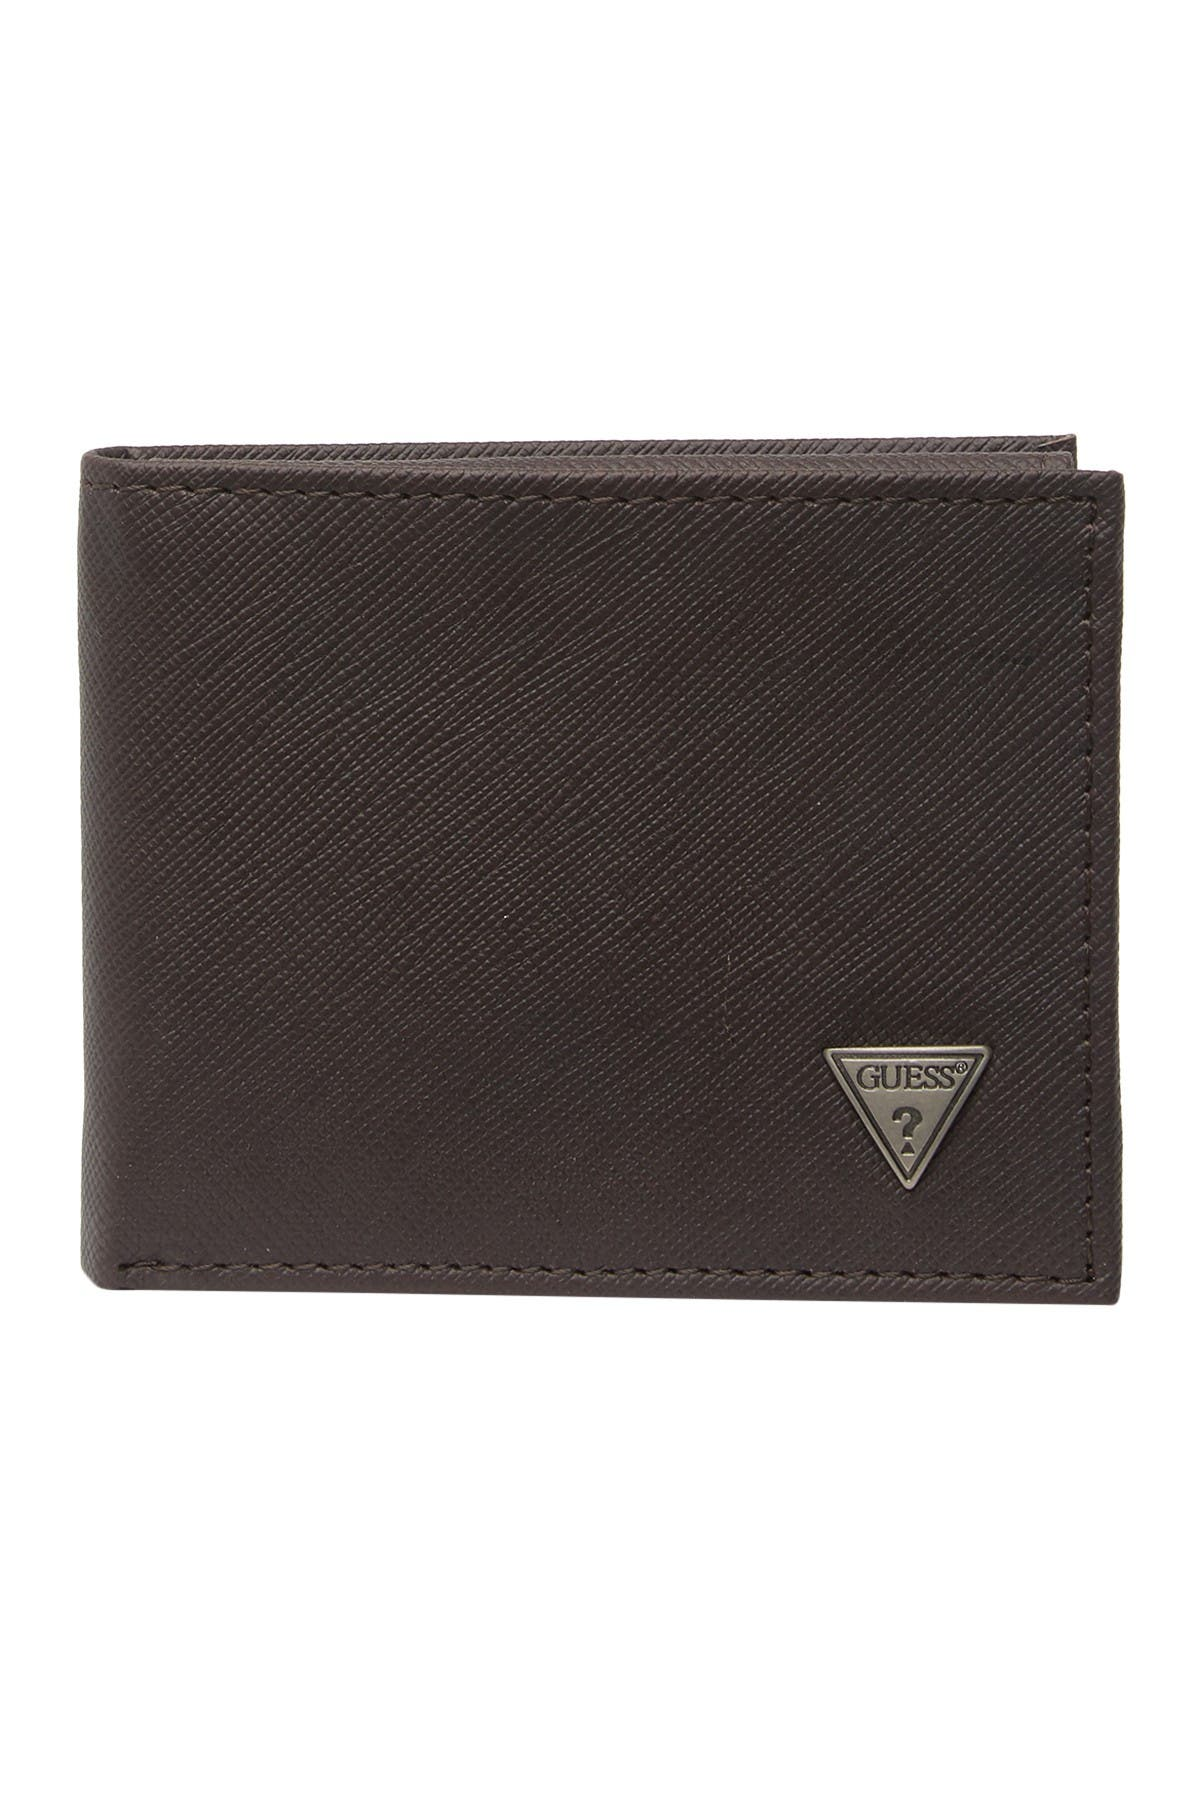 Image of GUESS Neo Passcase Wallet